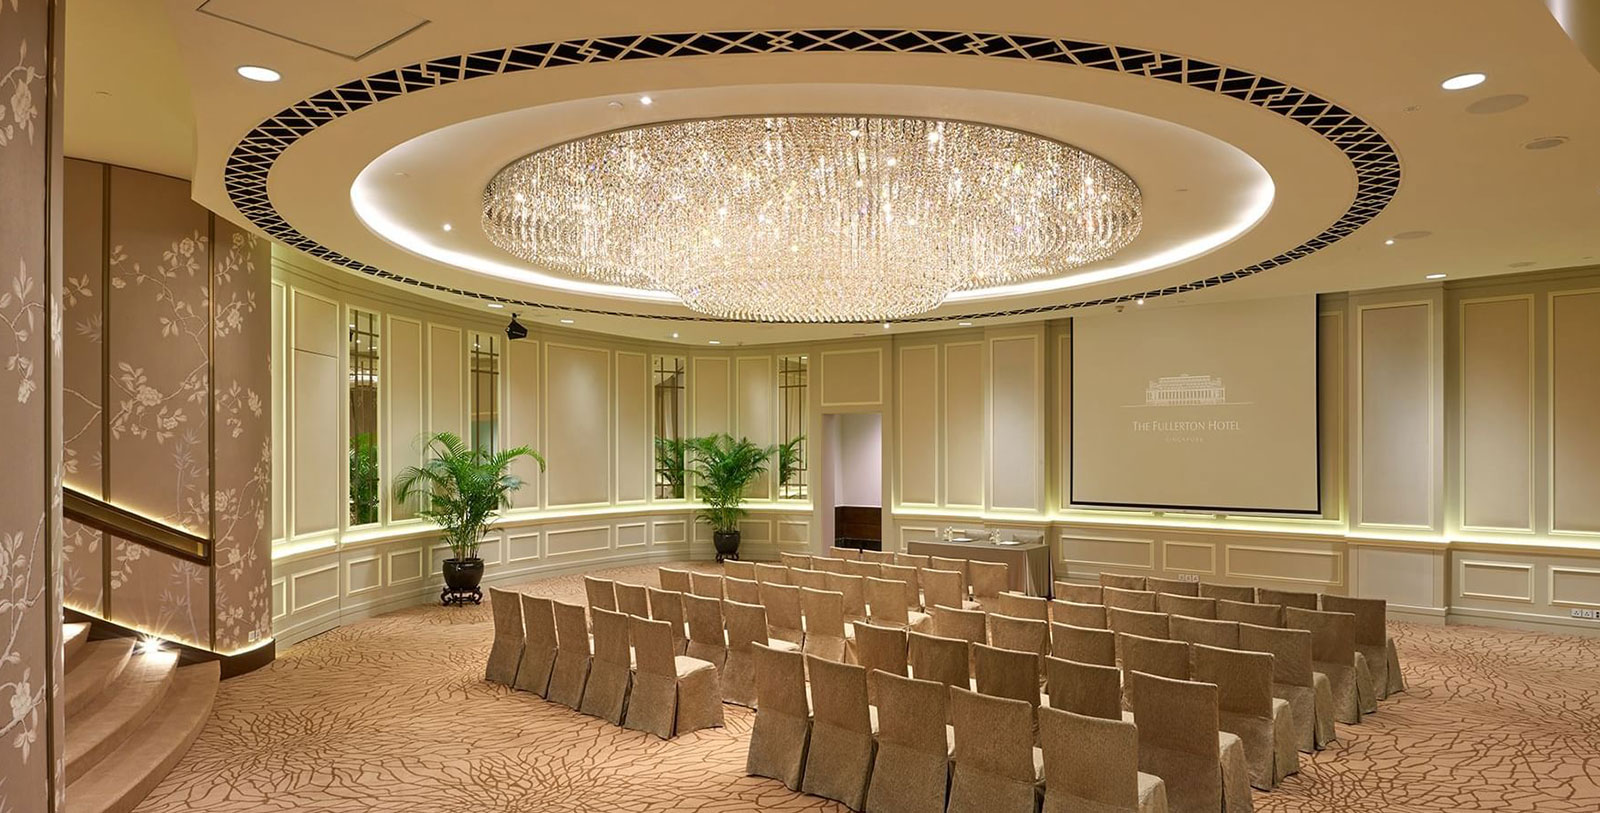 Image of The Ballroom at The Fullerton Hotel Singapore, 1924, Member of Historic Hotels Worldwide, in Singapore, Request for Proposal